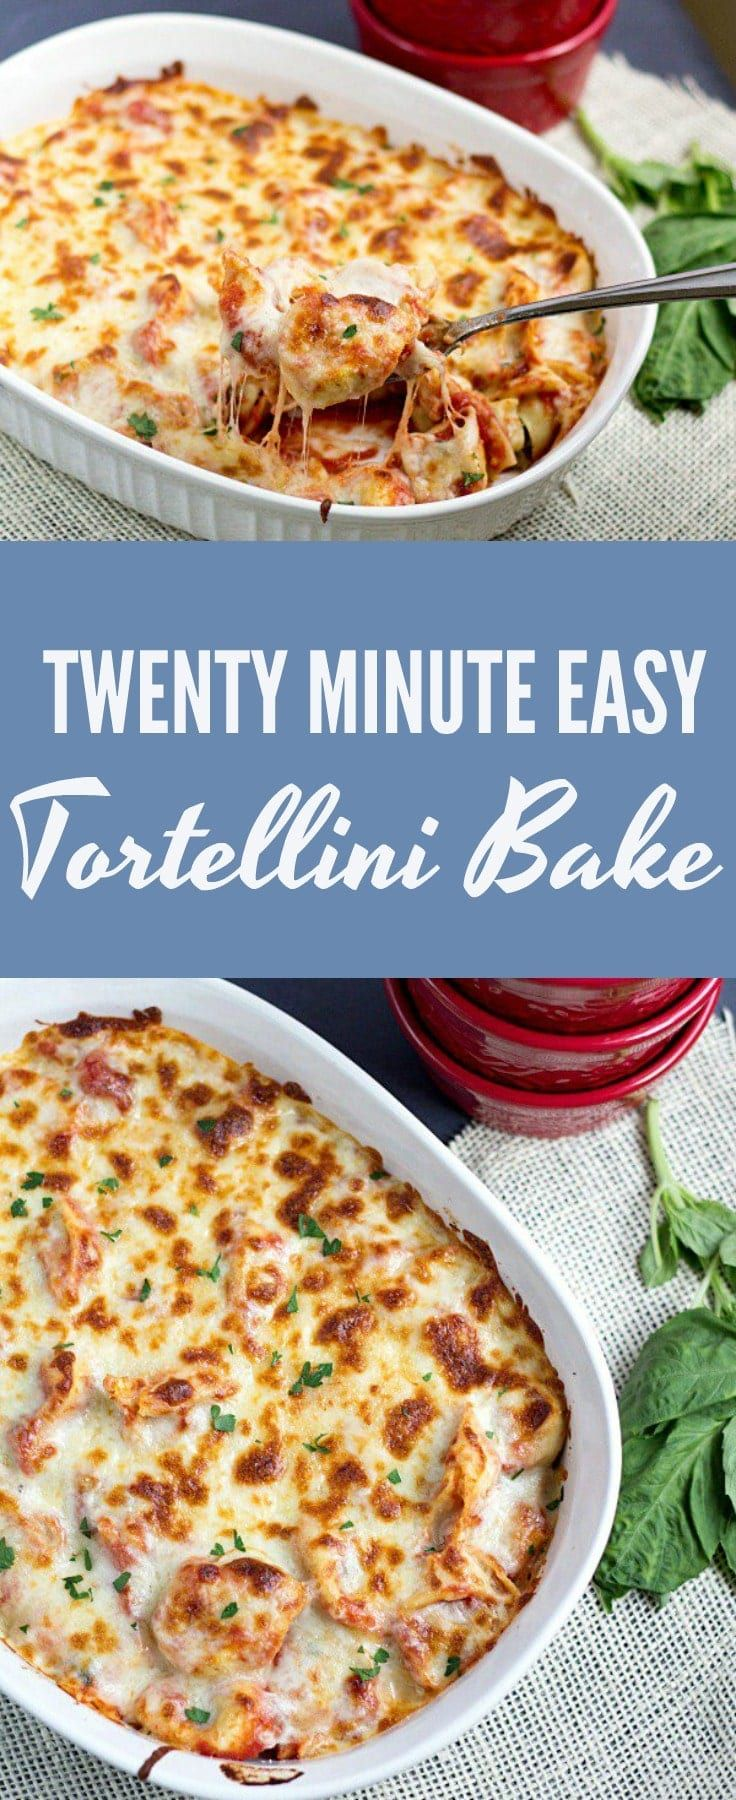 Twenty Minute Easy Tortellini Bake is a perfect weeknight dinner recipe. You'll have minimal cleanup and a delicious, cheesy dinner that everyone will love! #pasta #tortellini #dinner #recipe #cheese